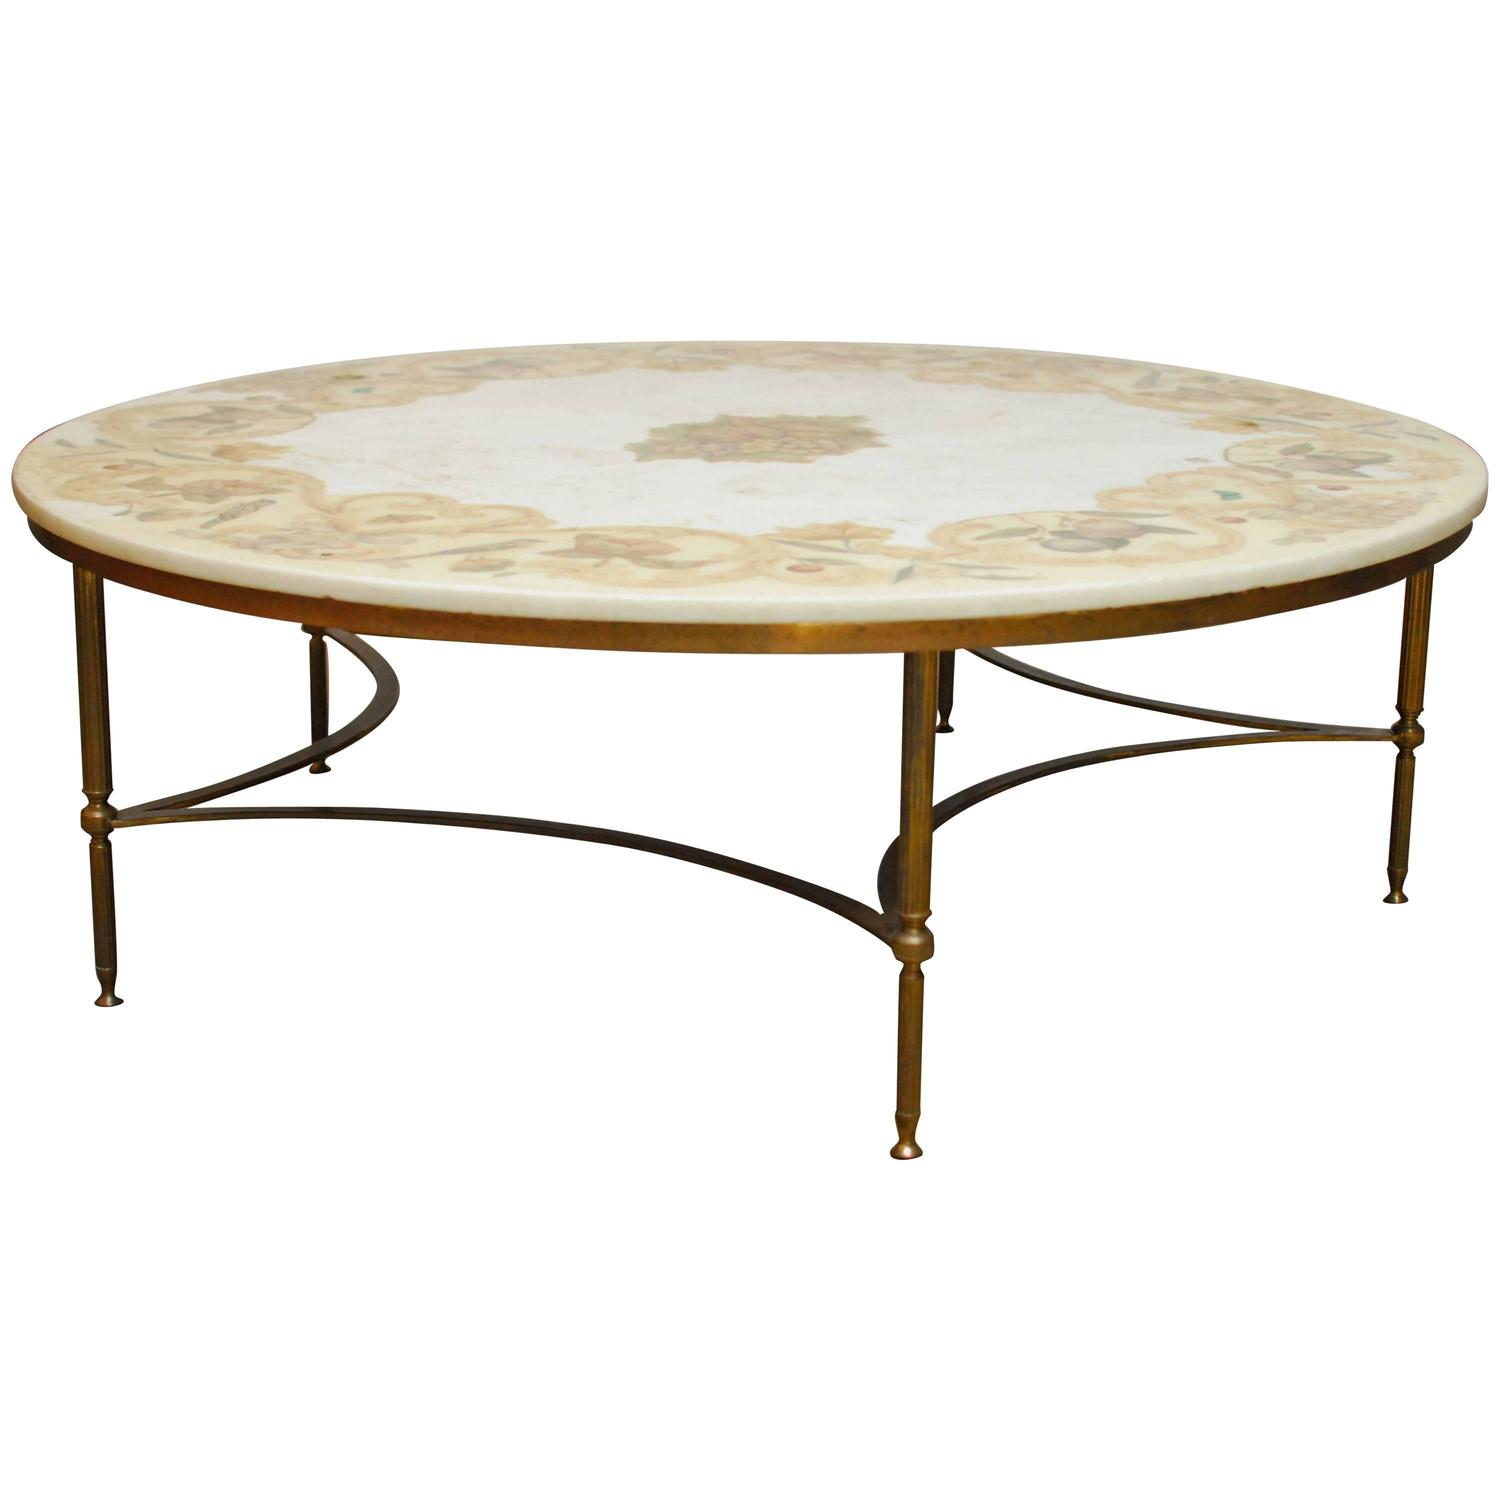 Florentine marble and brass round cocktail coffee table at Round cocktail table